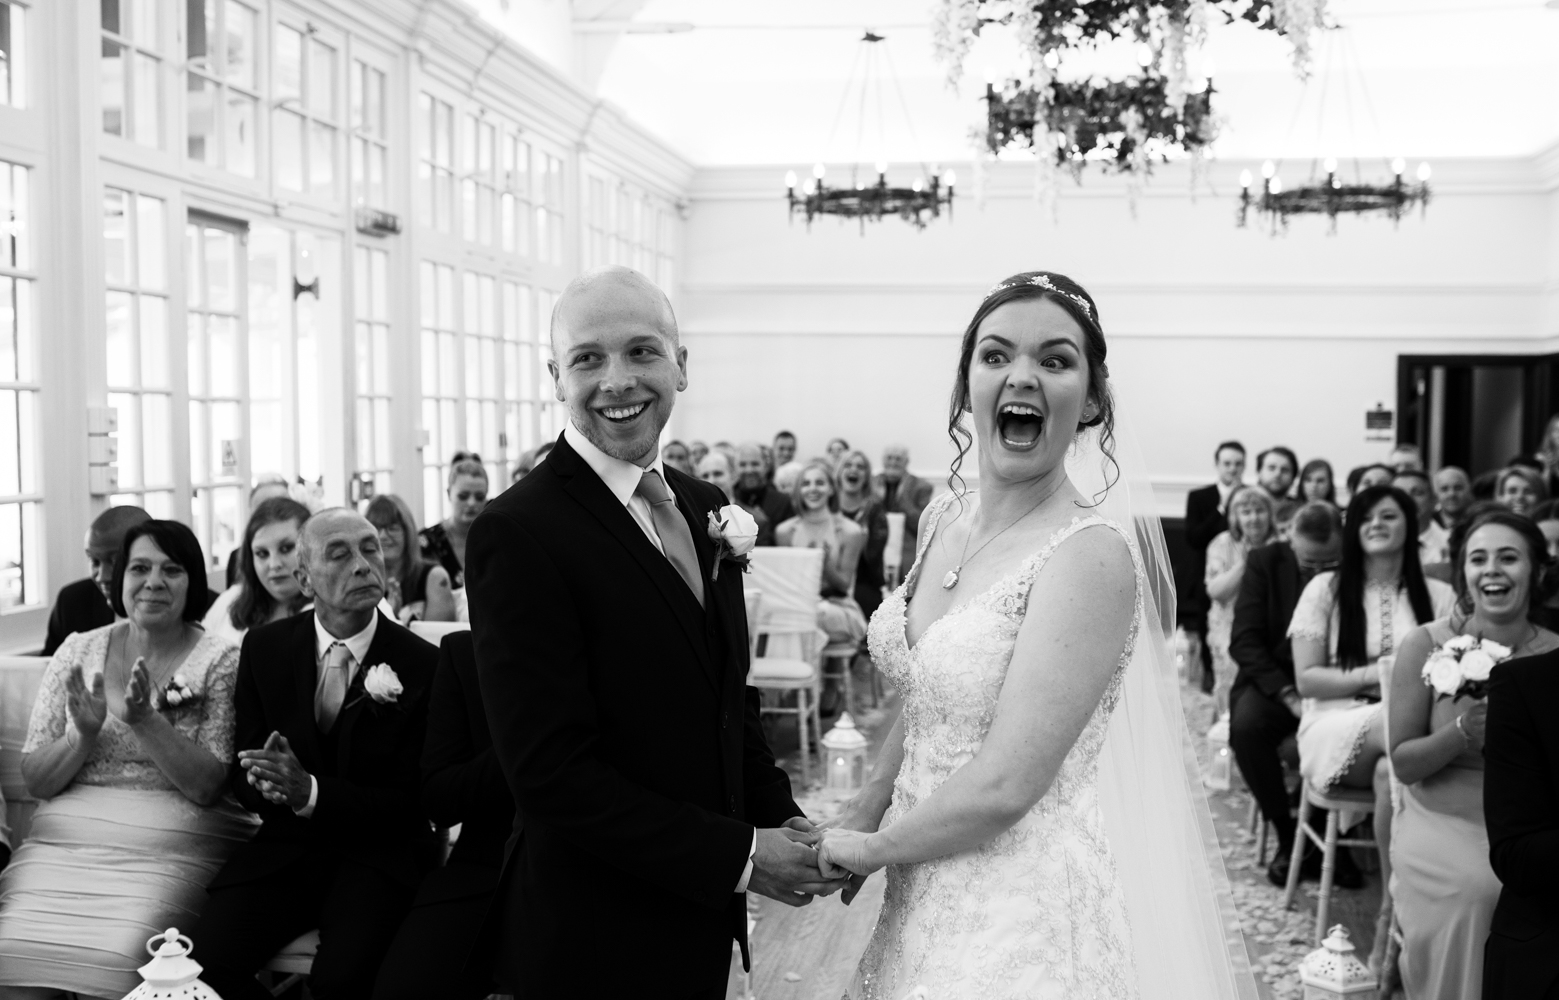 A black and white image of the bride and groom just as the groom says I do